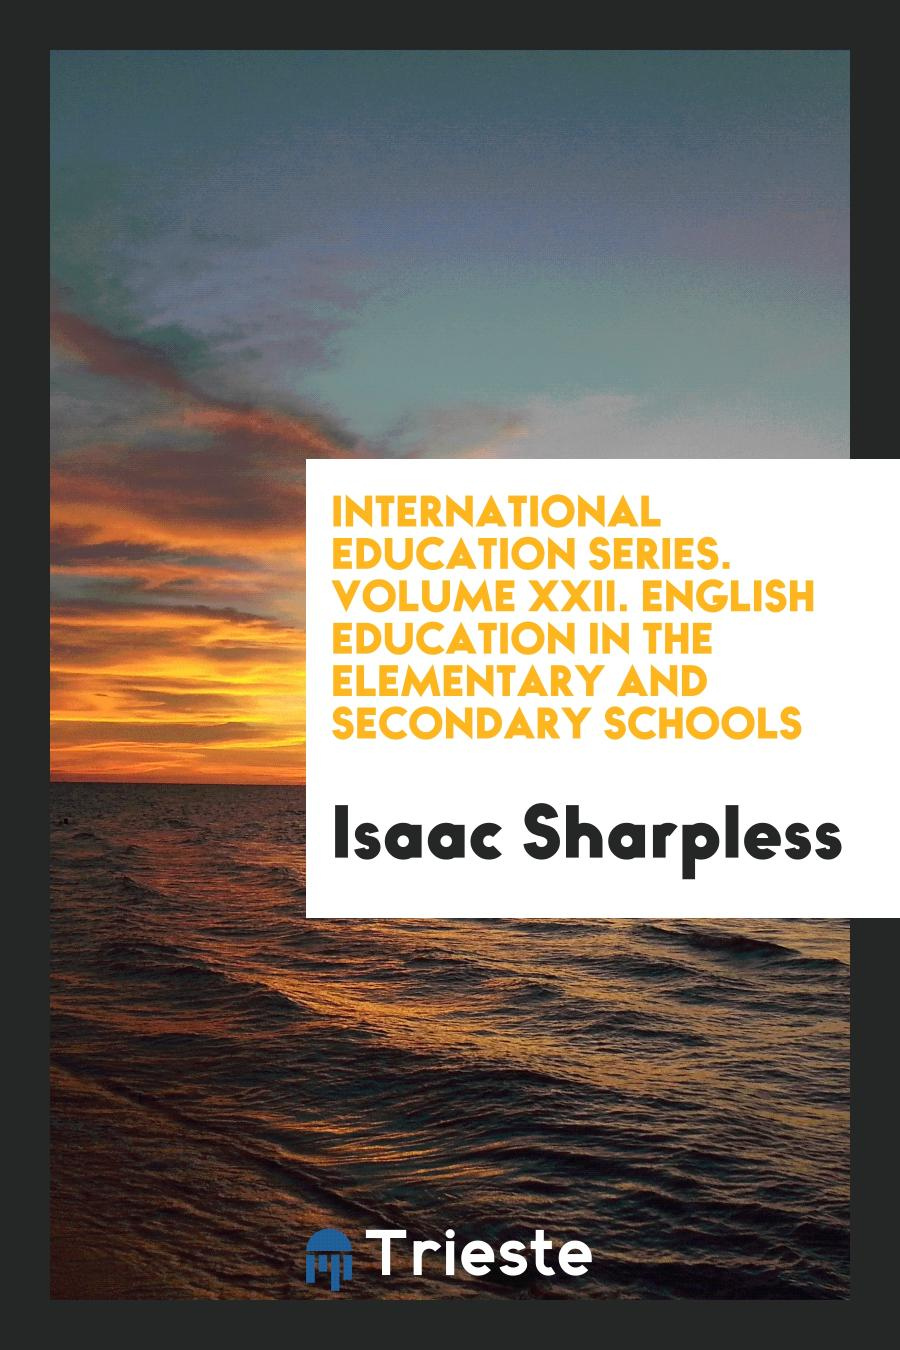 International Education Series. Volume XXII. English Education in the Elementary and Secondary Schools